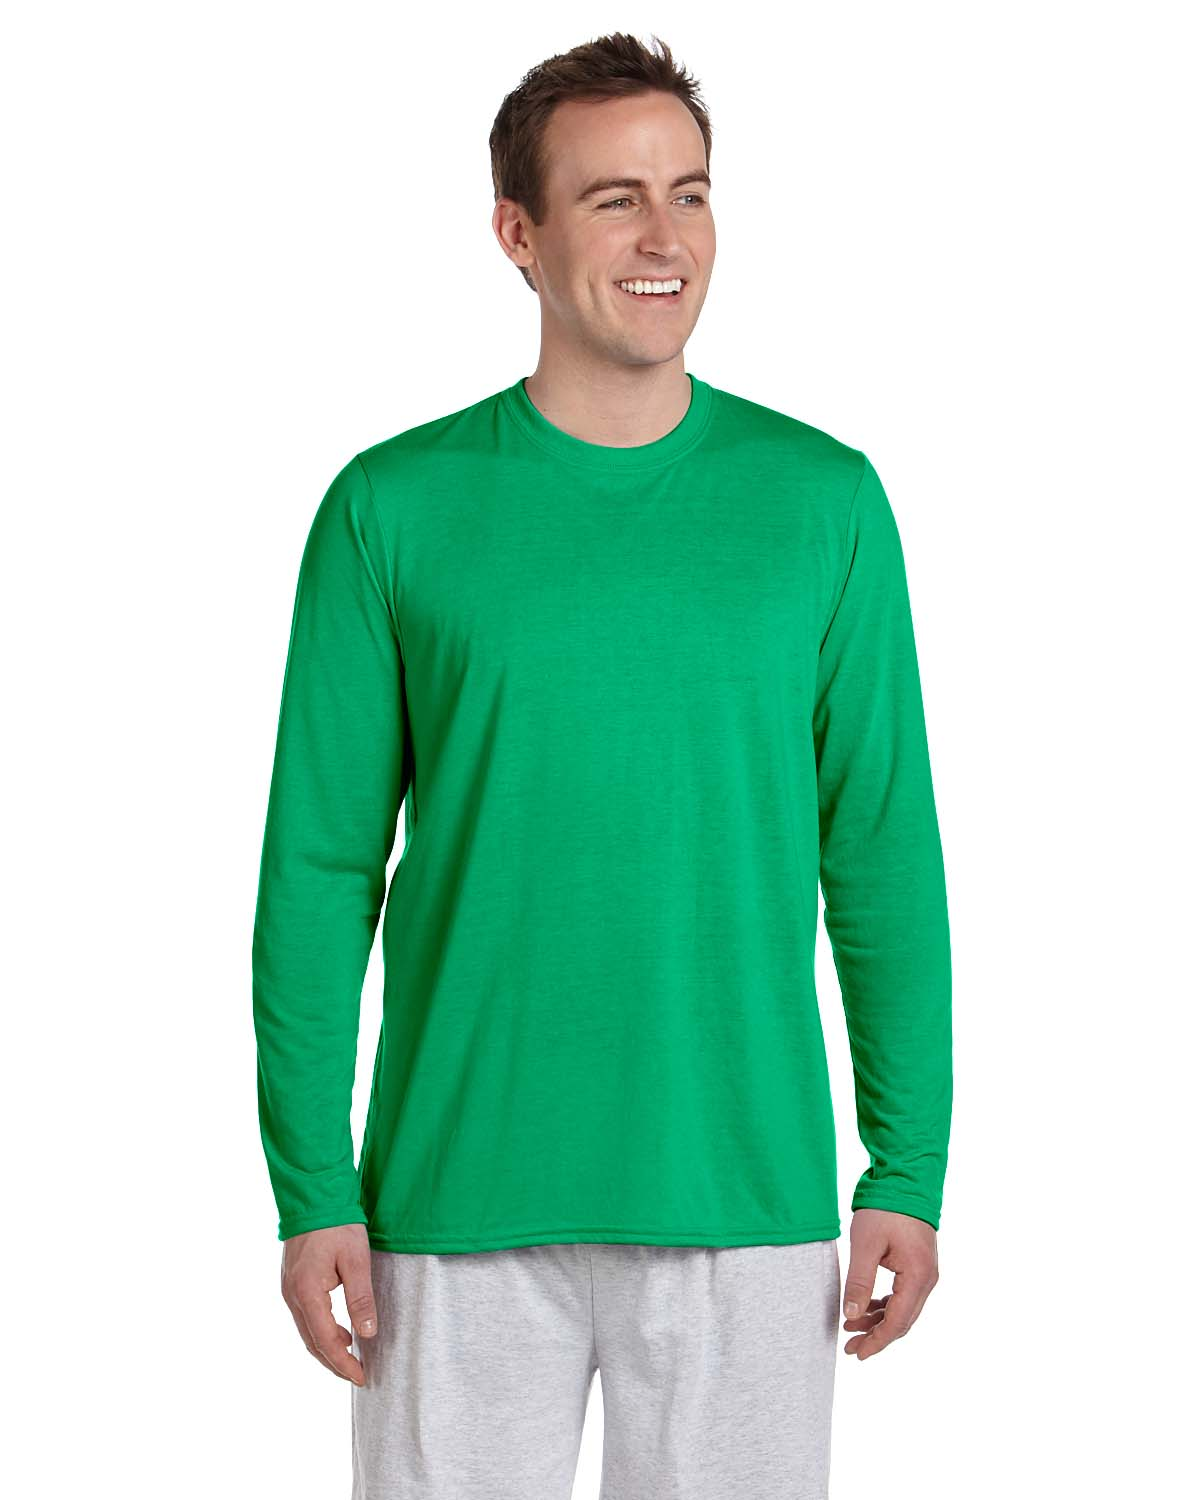 Gildan performance 100 polyester 4 5 oz long sleeve t for What is a performance t shirt